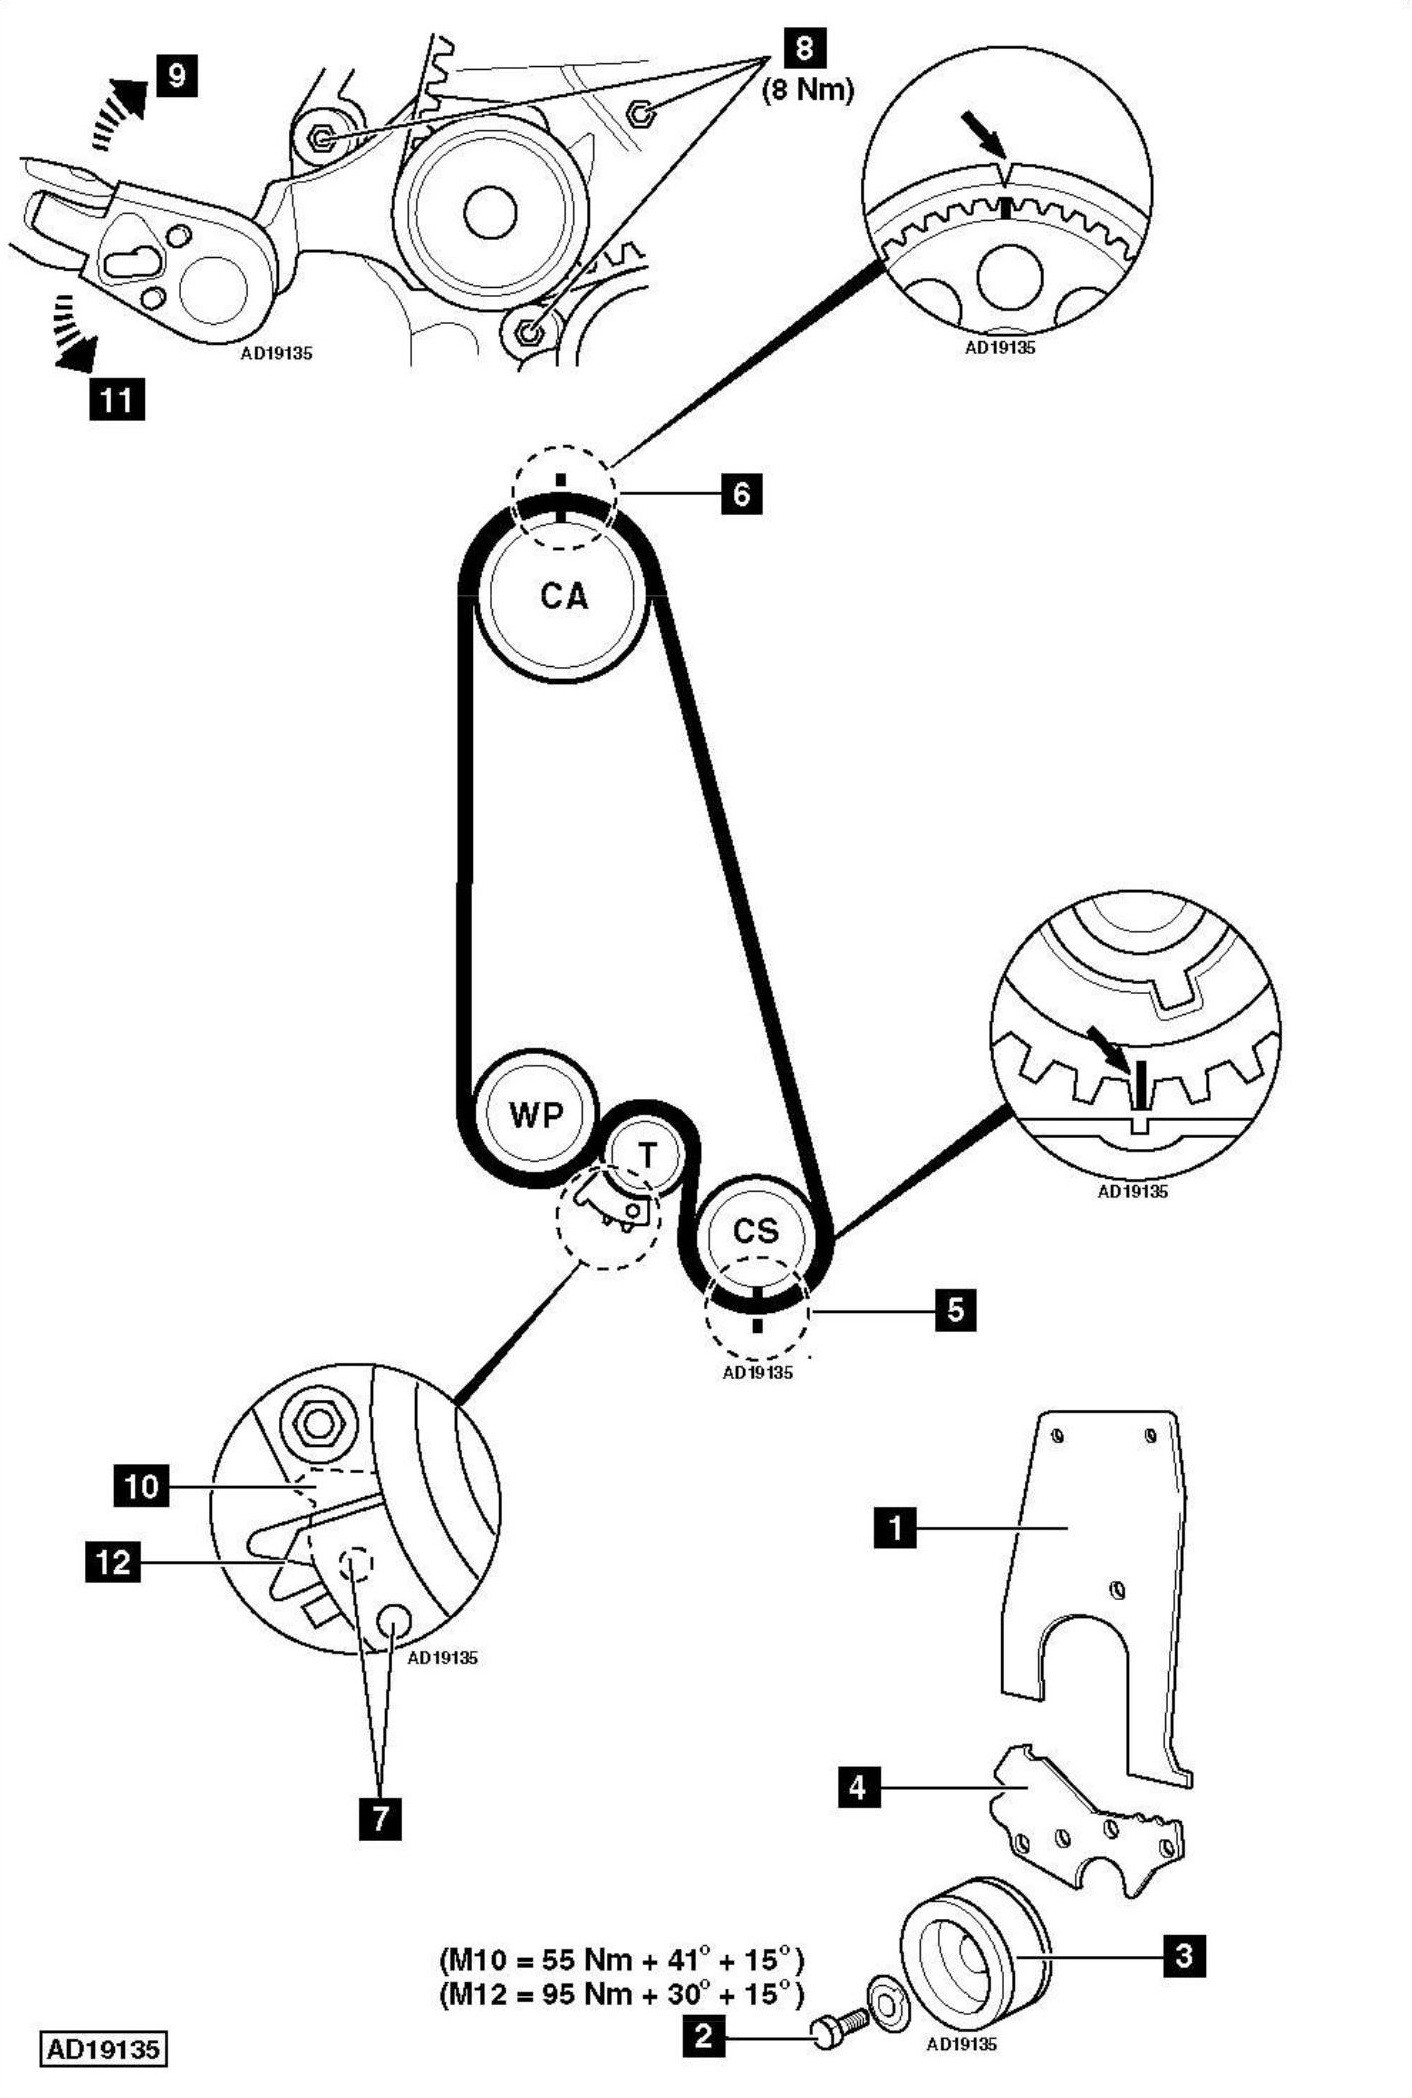 Engine Timing Diagram 55 Corsa B Timing Chain Vauxhall Corsa Agila astra Meriva Timing Of Engine Timing Diagram